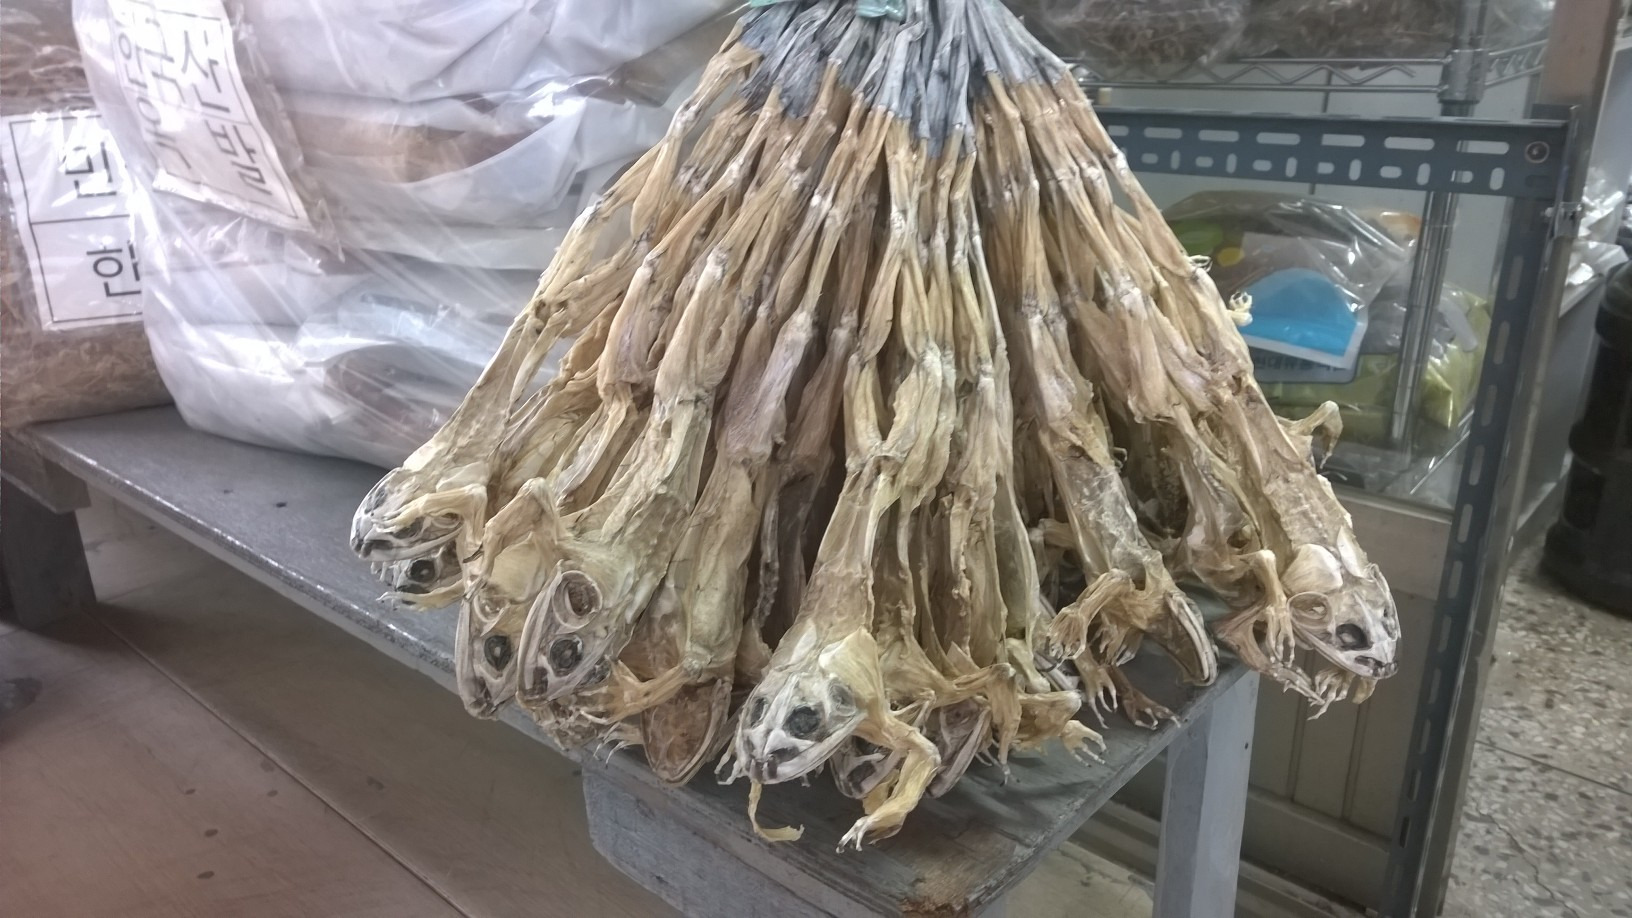 Dried frogs - the shop owner could not explain to me what good this would do to my health